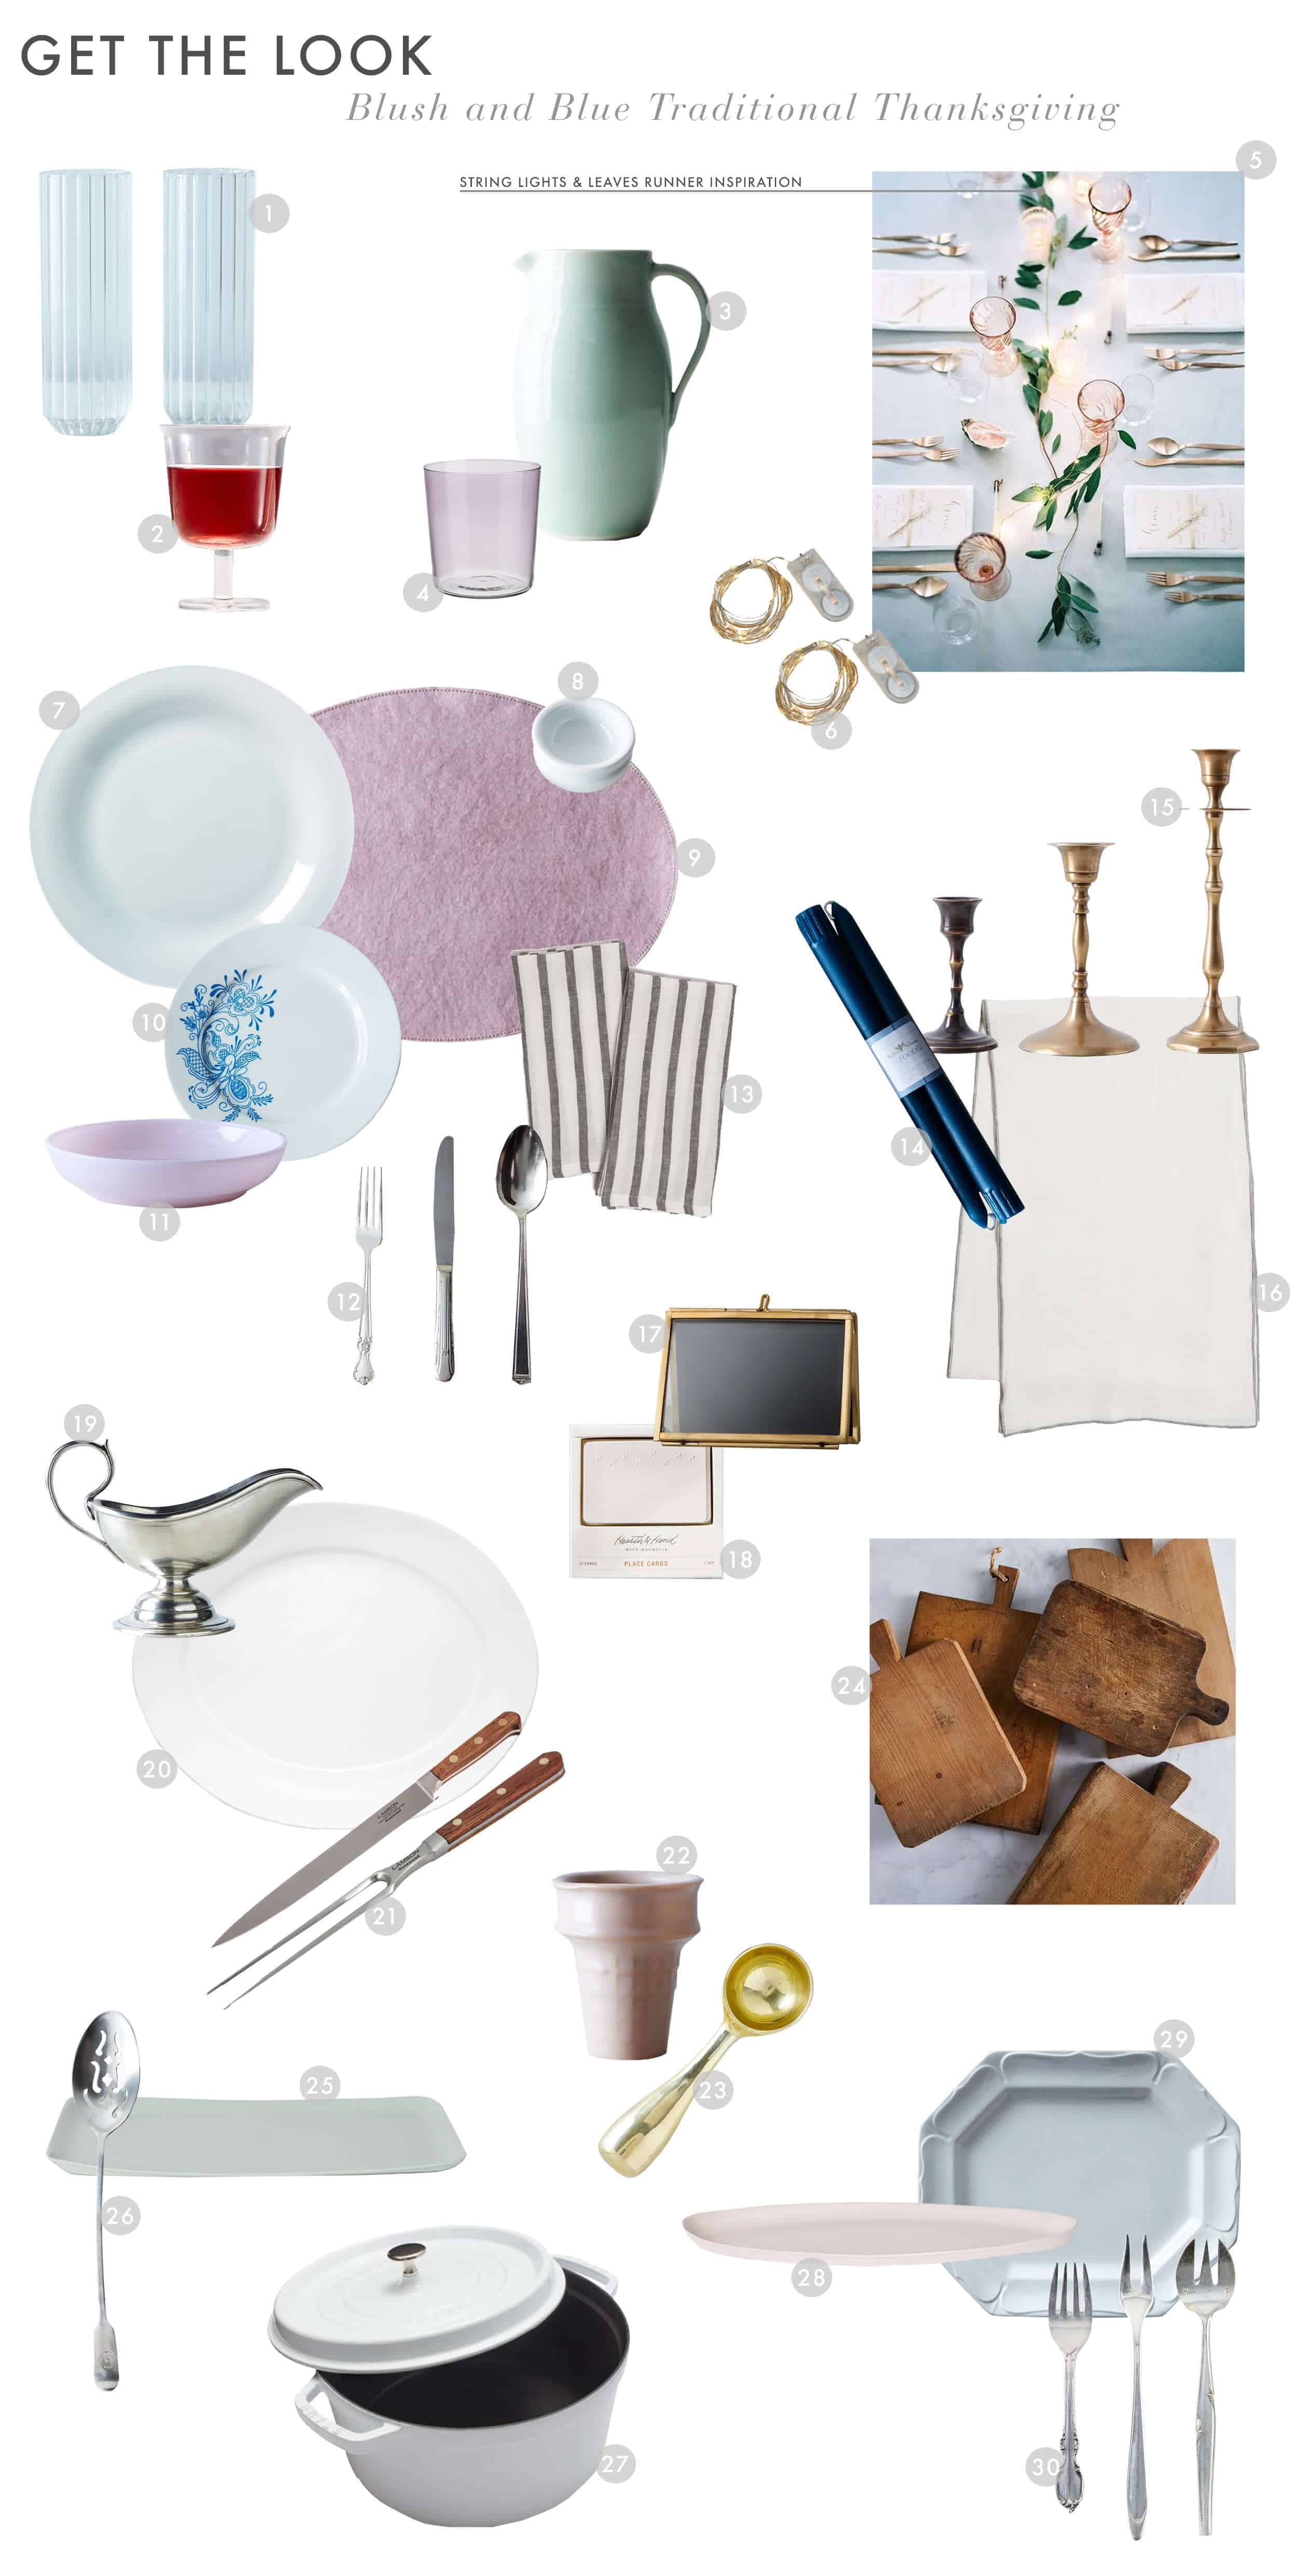 Emily Henderson Thanksgiving Friendsgiving Blue And Blush Traditional 1